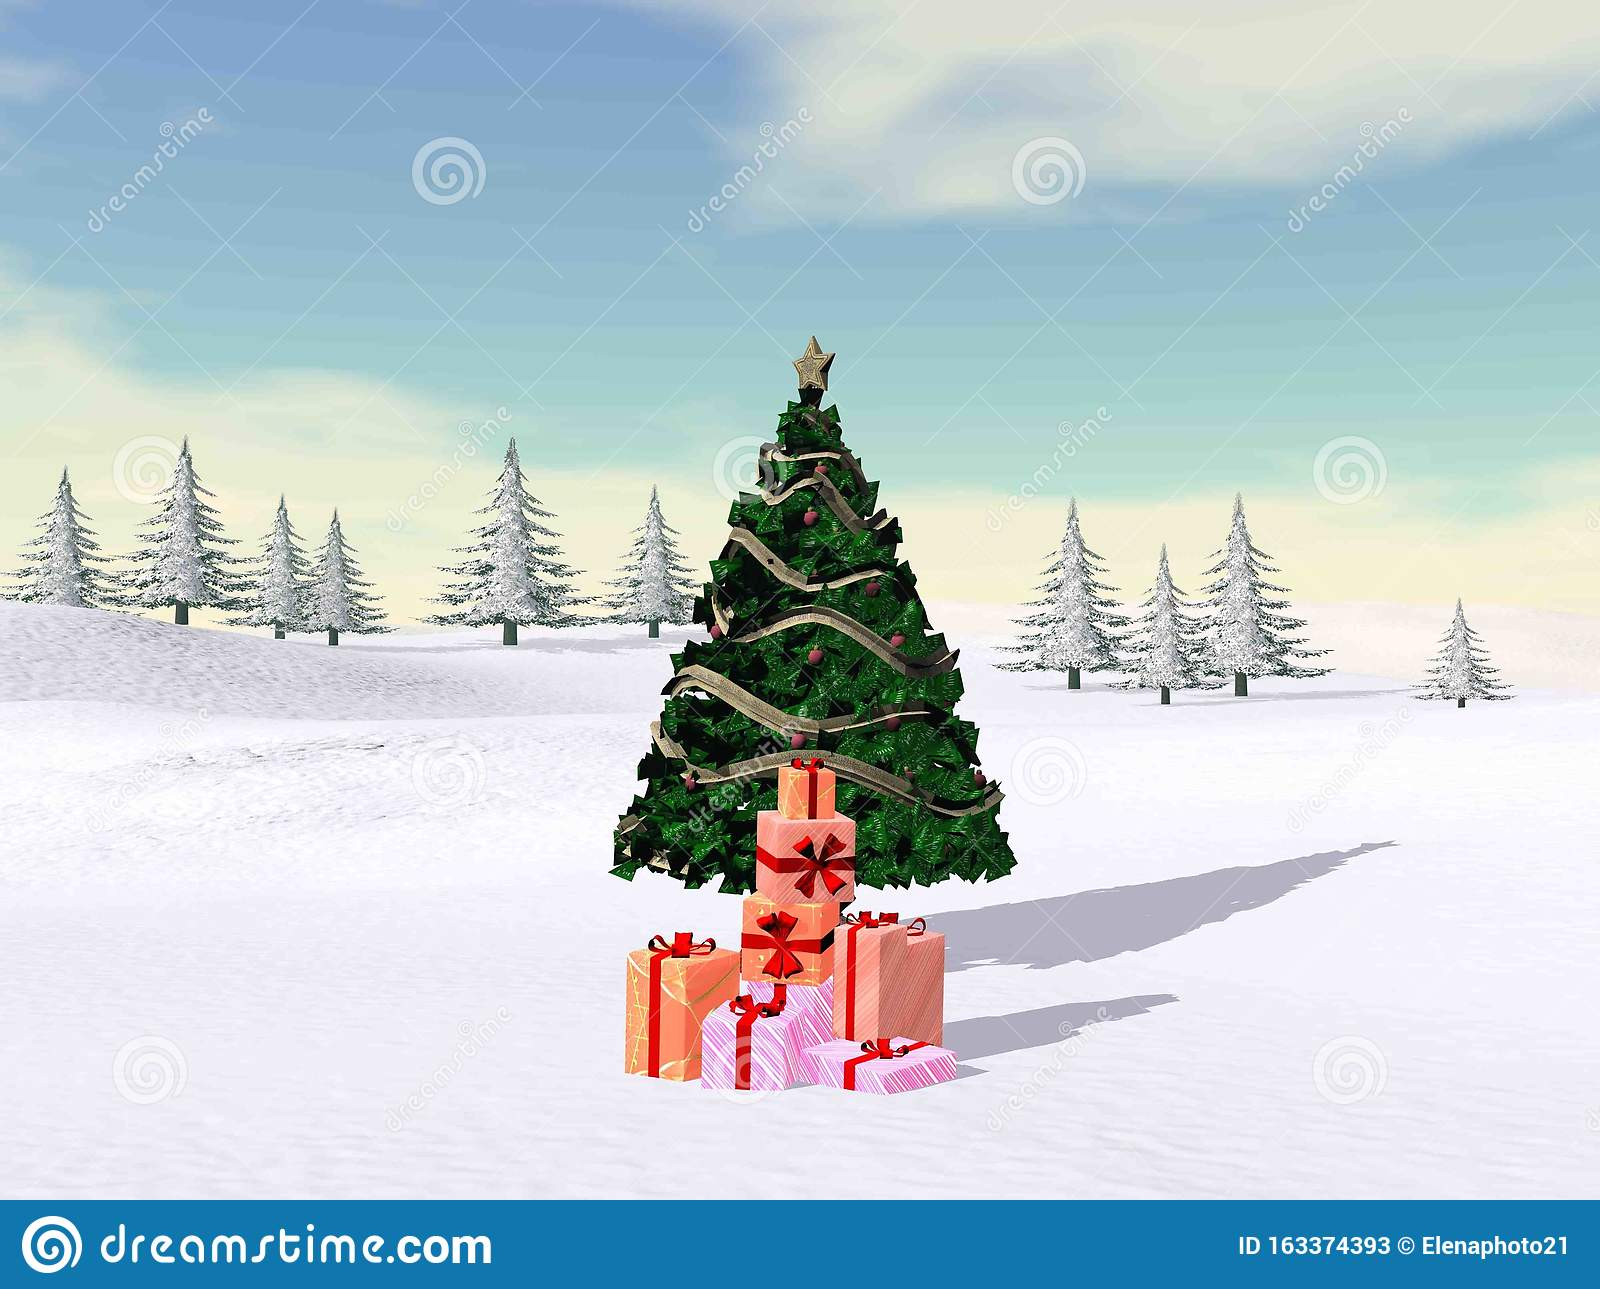 Christmas tree in the mountain - 3D render